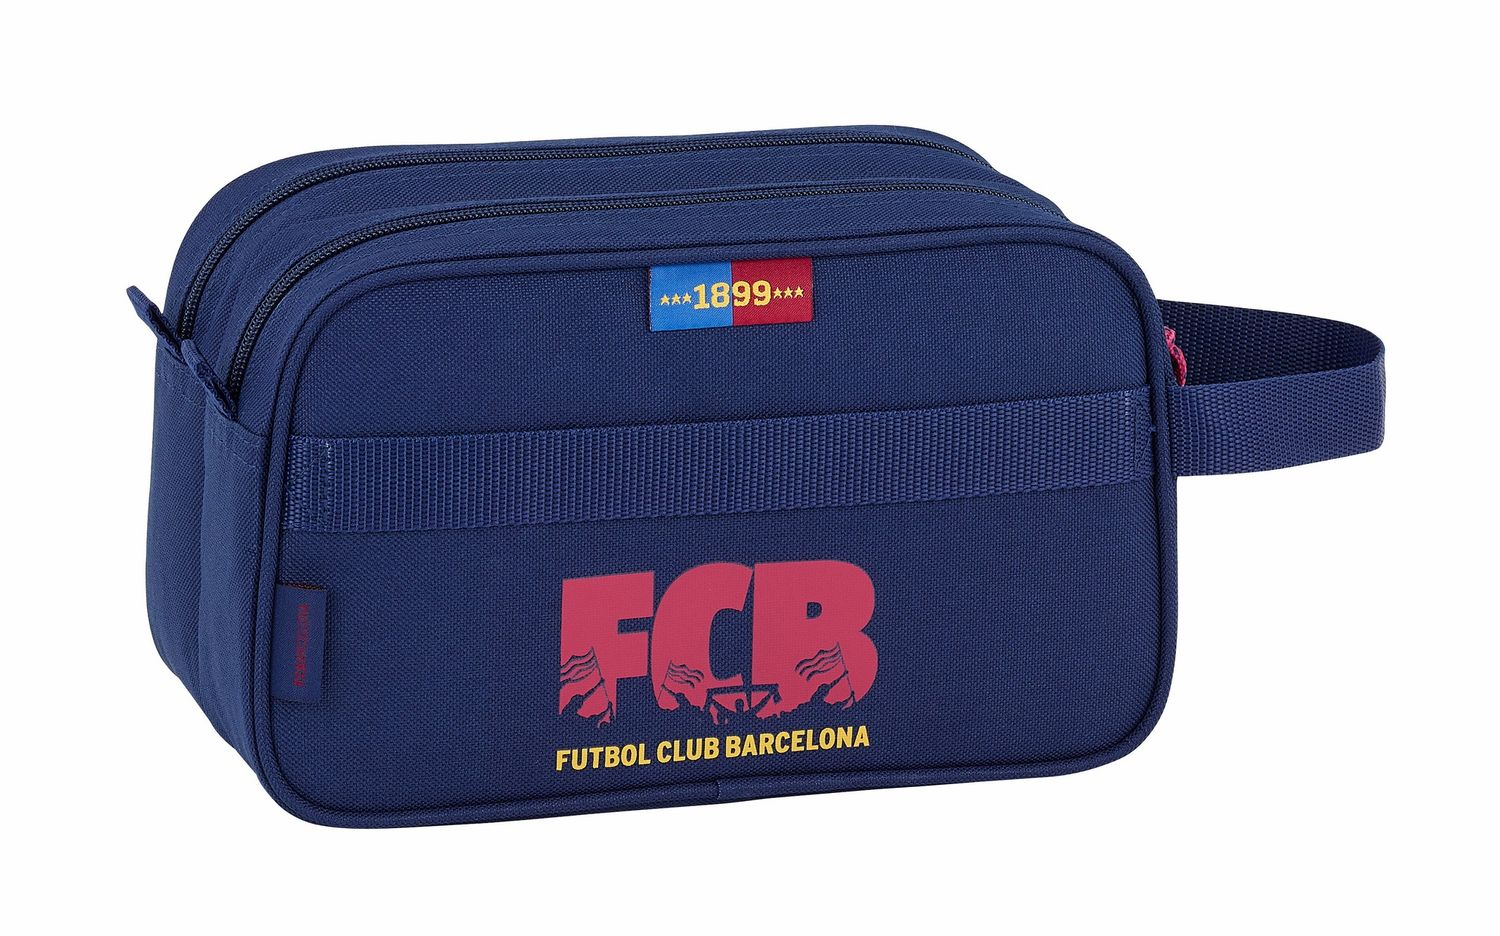 OFFICIAL F.C. Barcelona Corporate Wash Travel Bag 2 Zips 26 cm – image 2